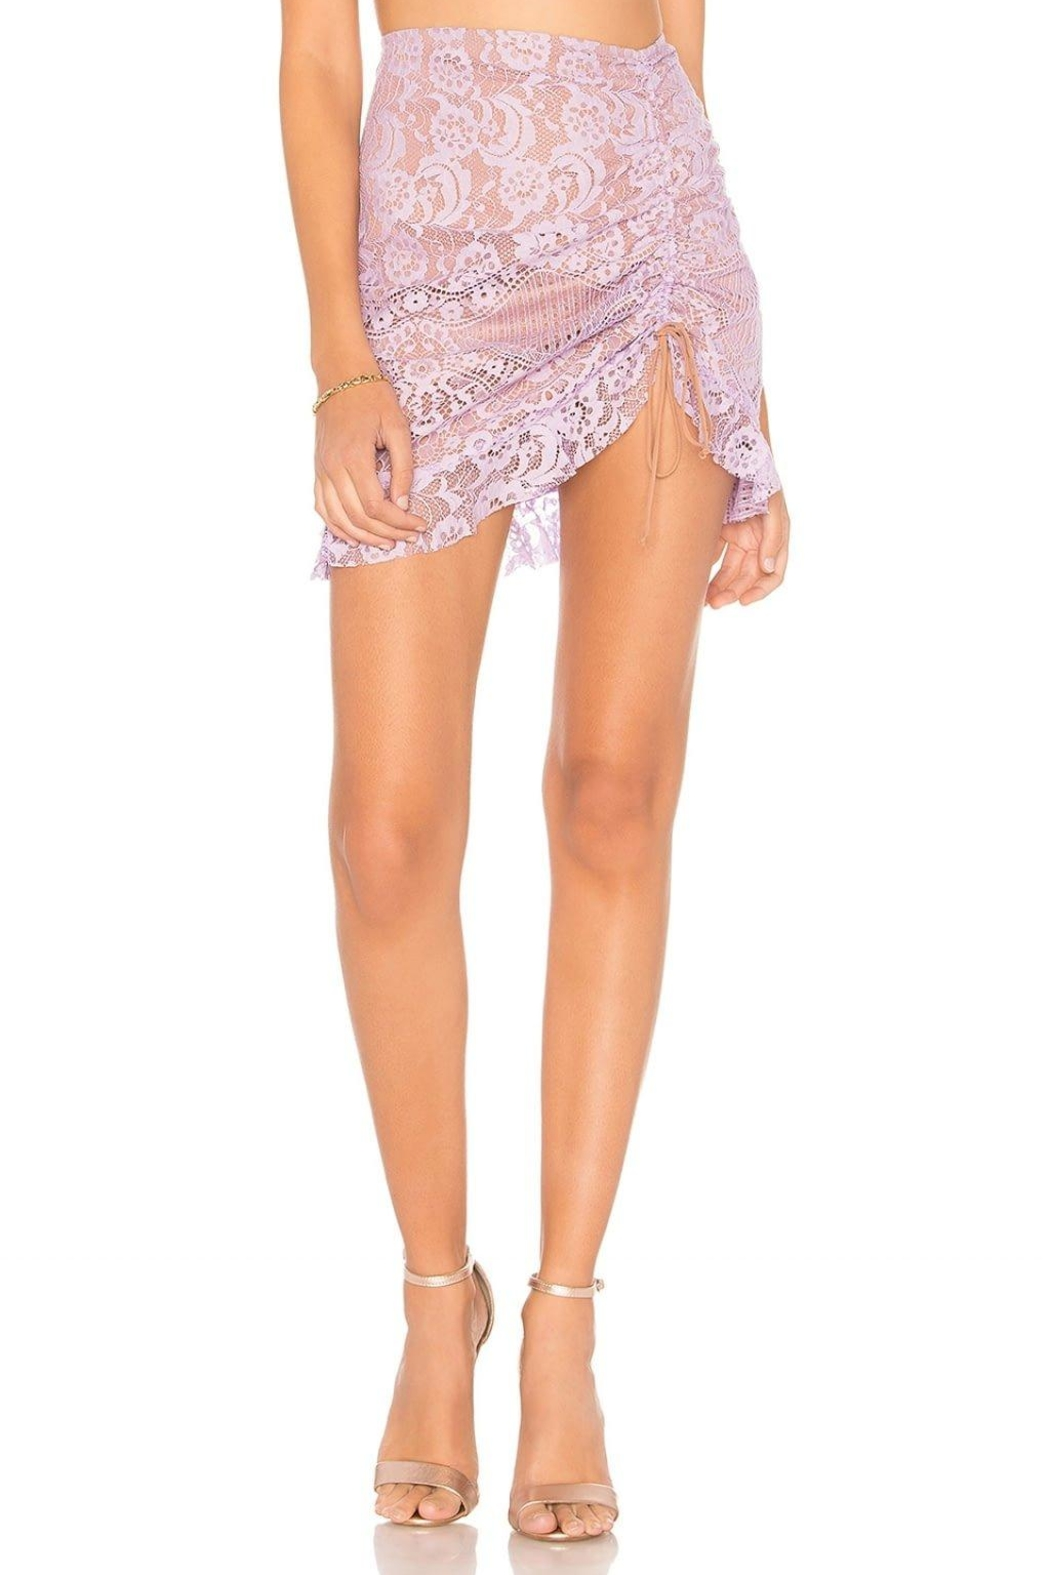 FOR LOVE & LEMONS Lace Mini Skirt - Front Full Image